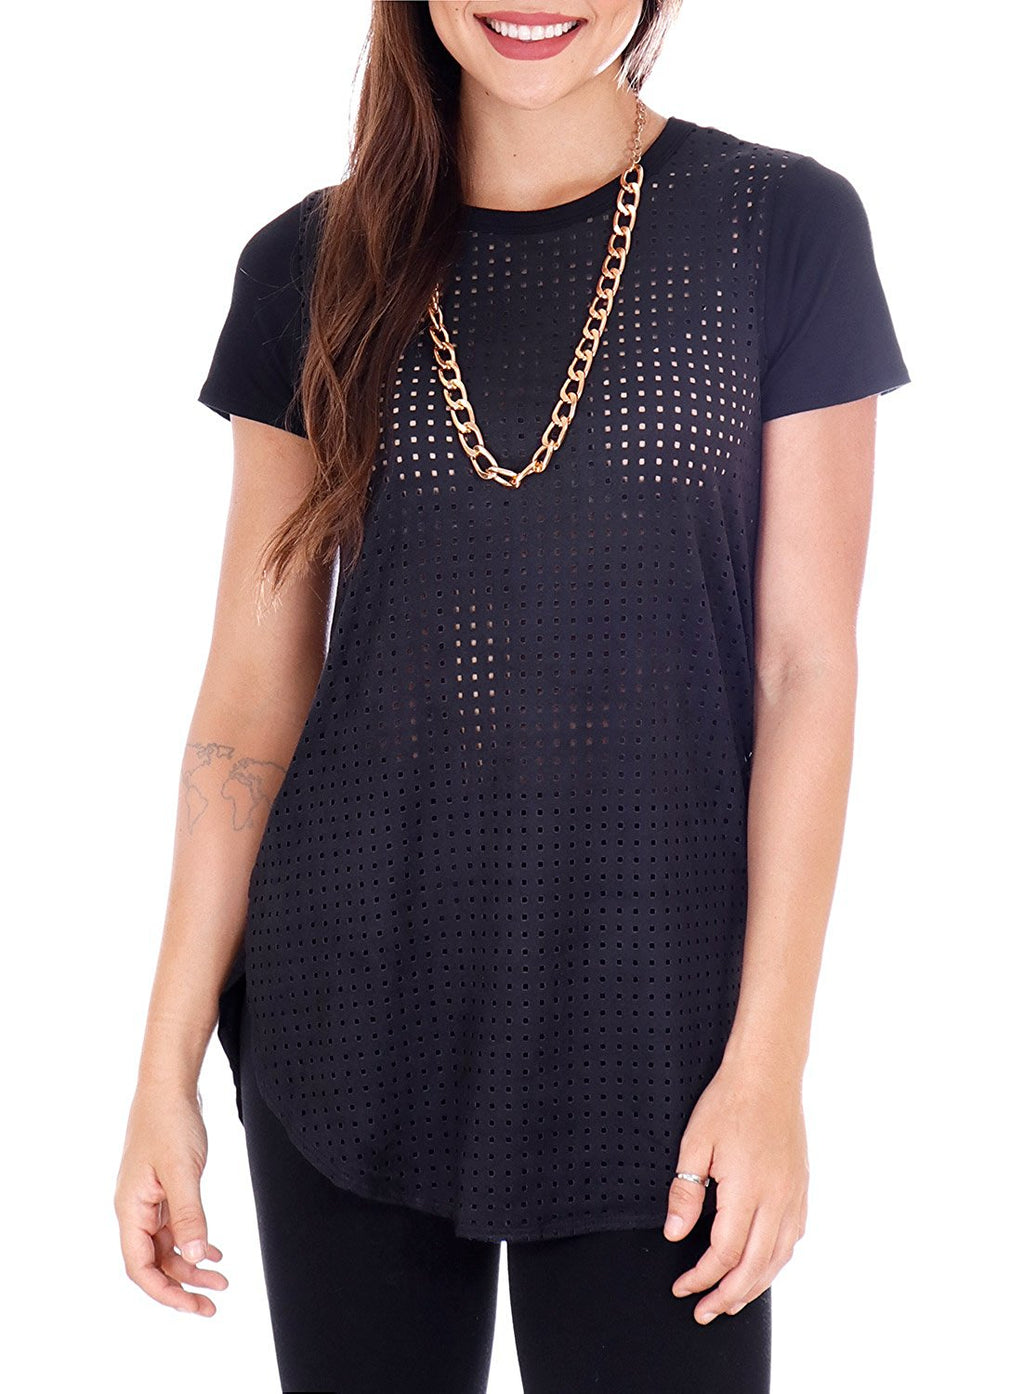 Laser Cut Faux Suede Short Sleeve T-Shirt with Rose Gold Chain Necklace (Black)